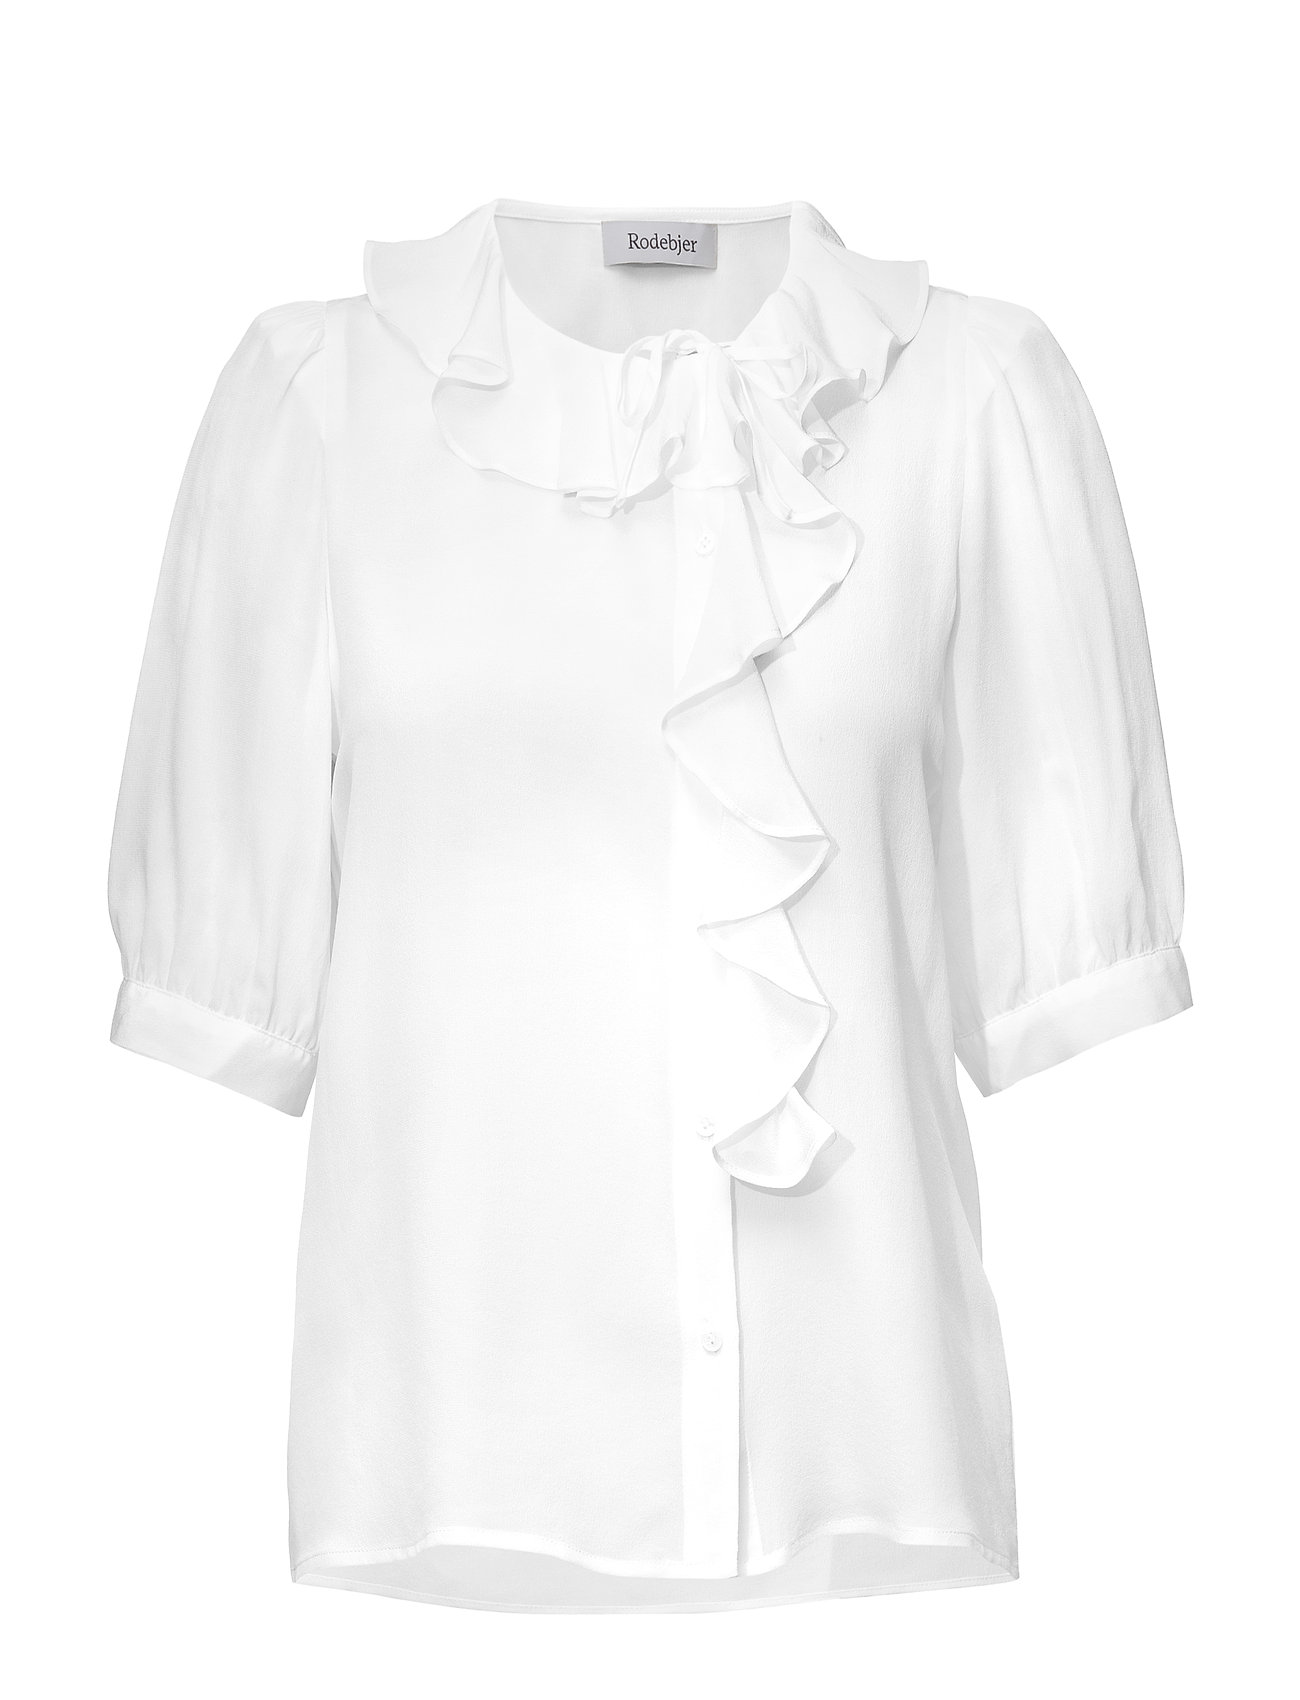 RODEBJER XILLA SILK - OFF WHITE